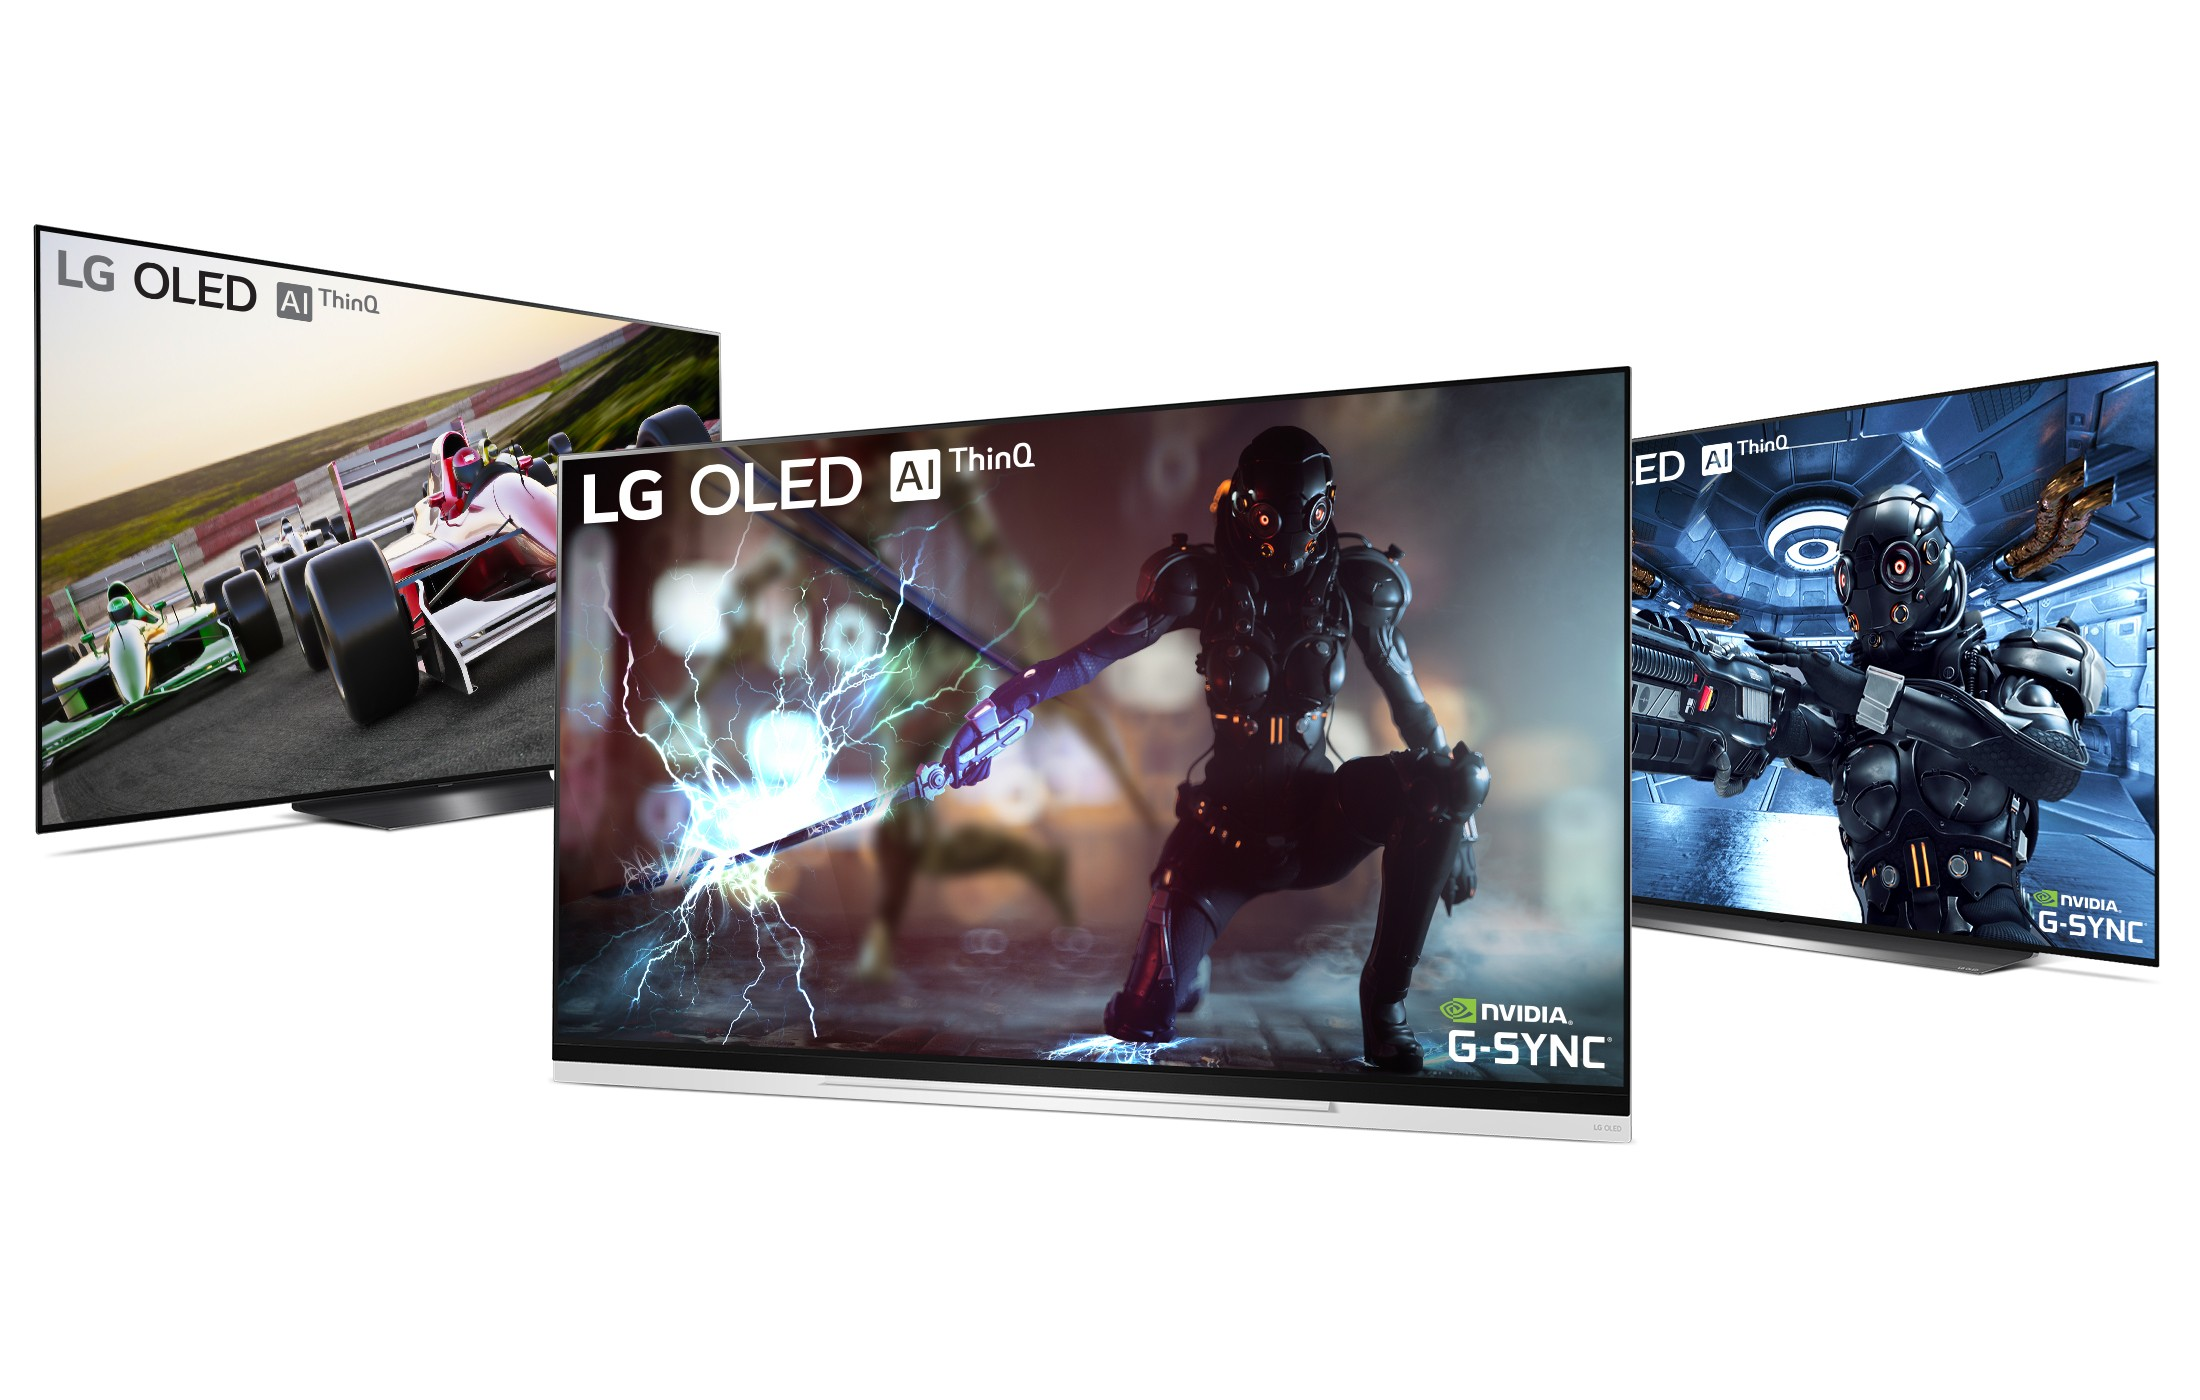 NVIDIA G-SYNC on LG OLED TV models E9, C9 and B9.